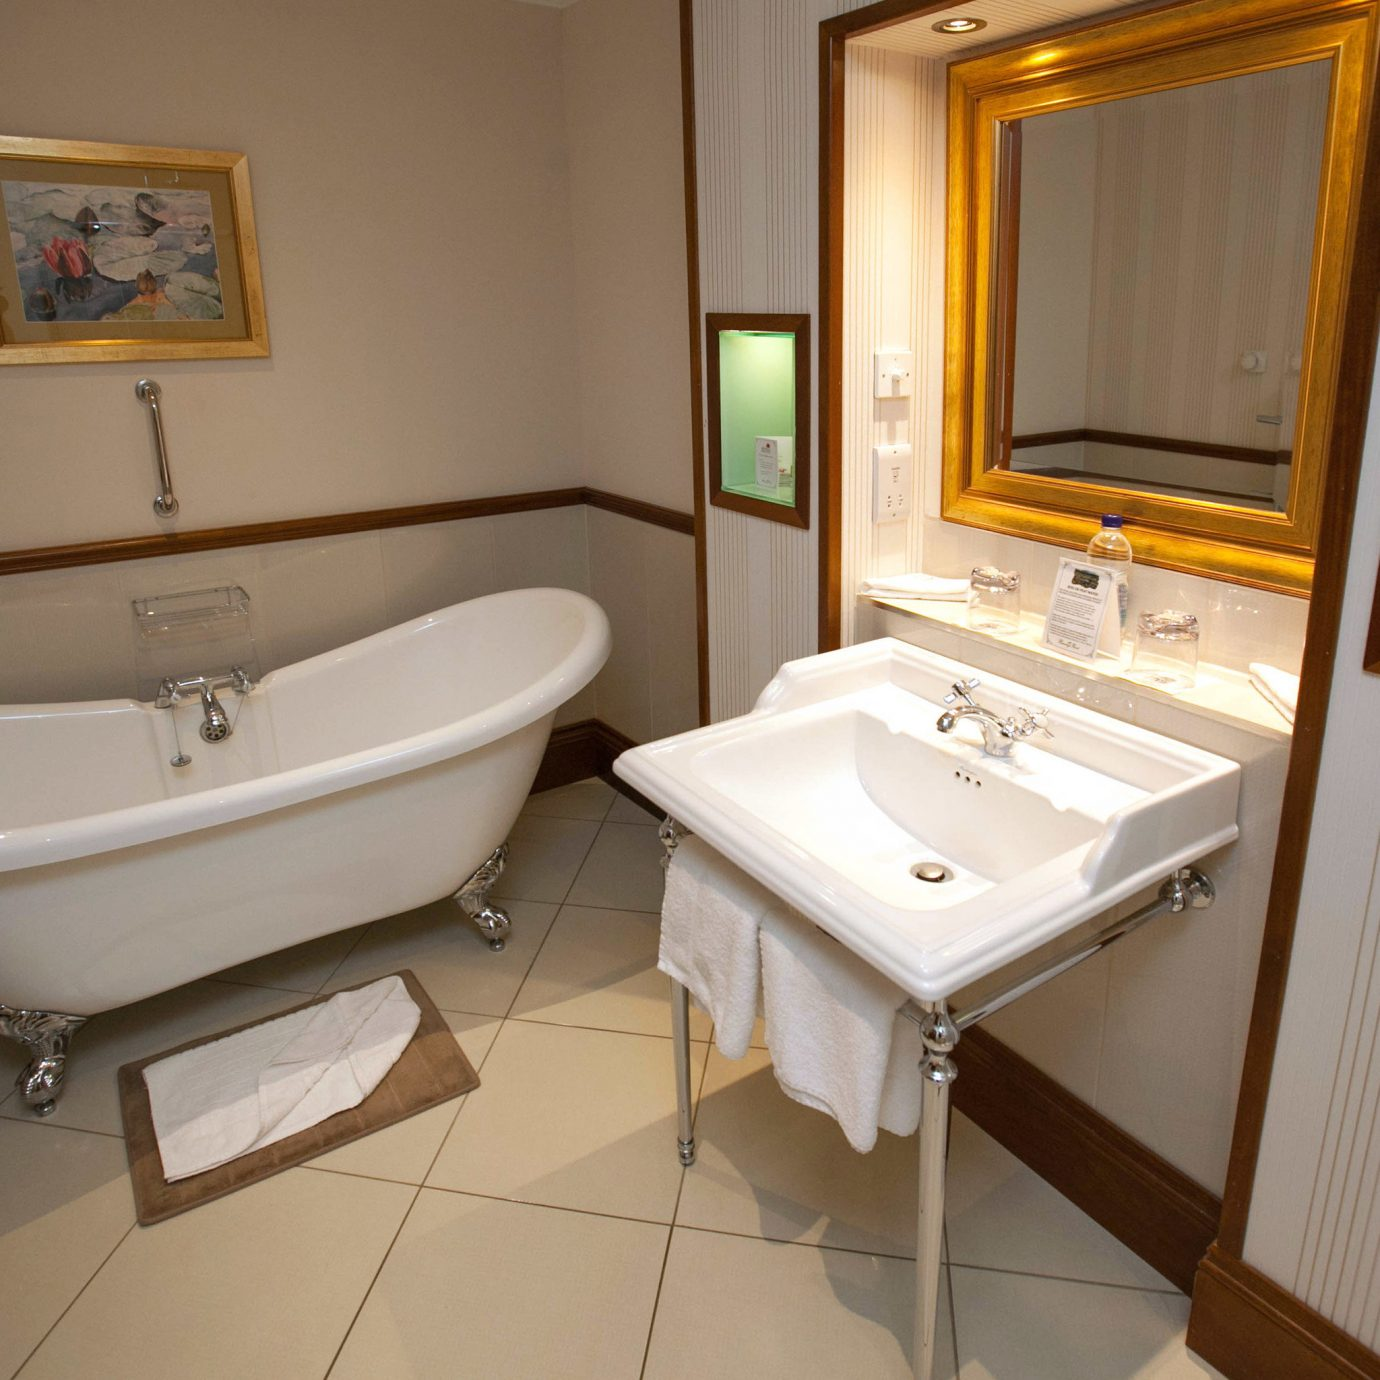 bathroom sink property Suite home cottage tiled tan